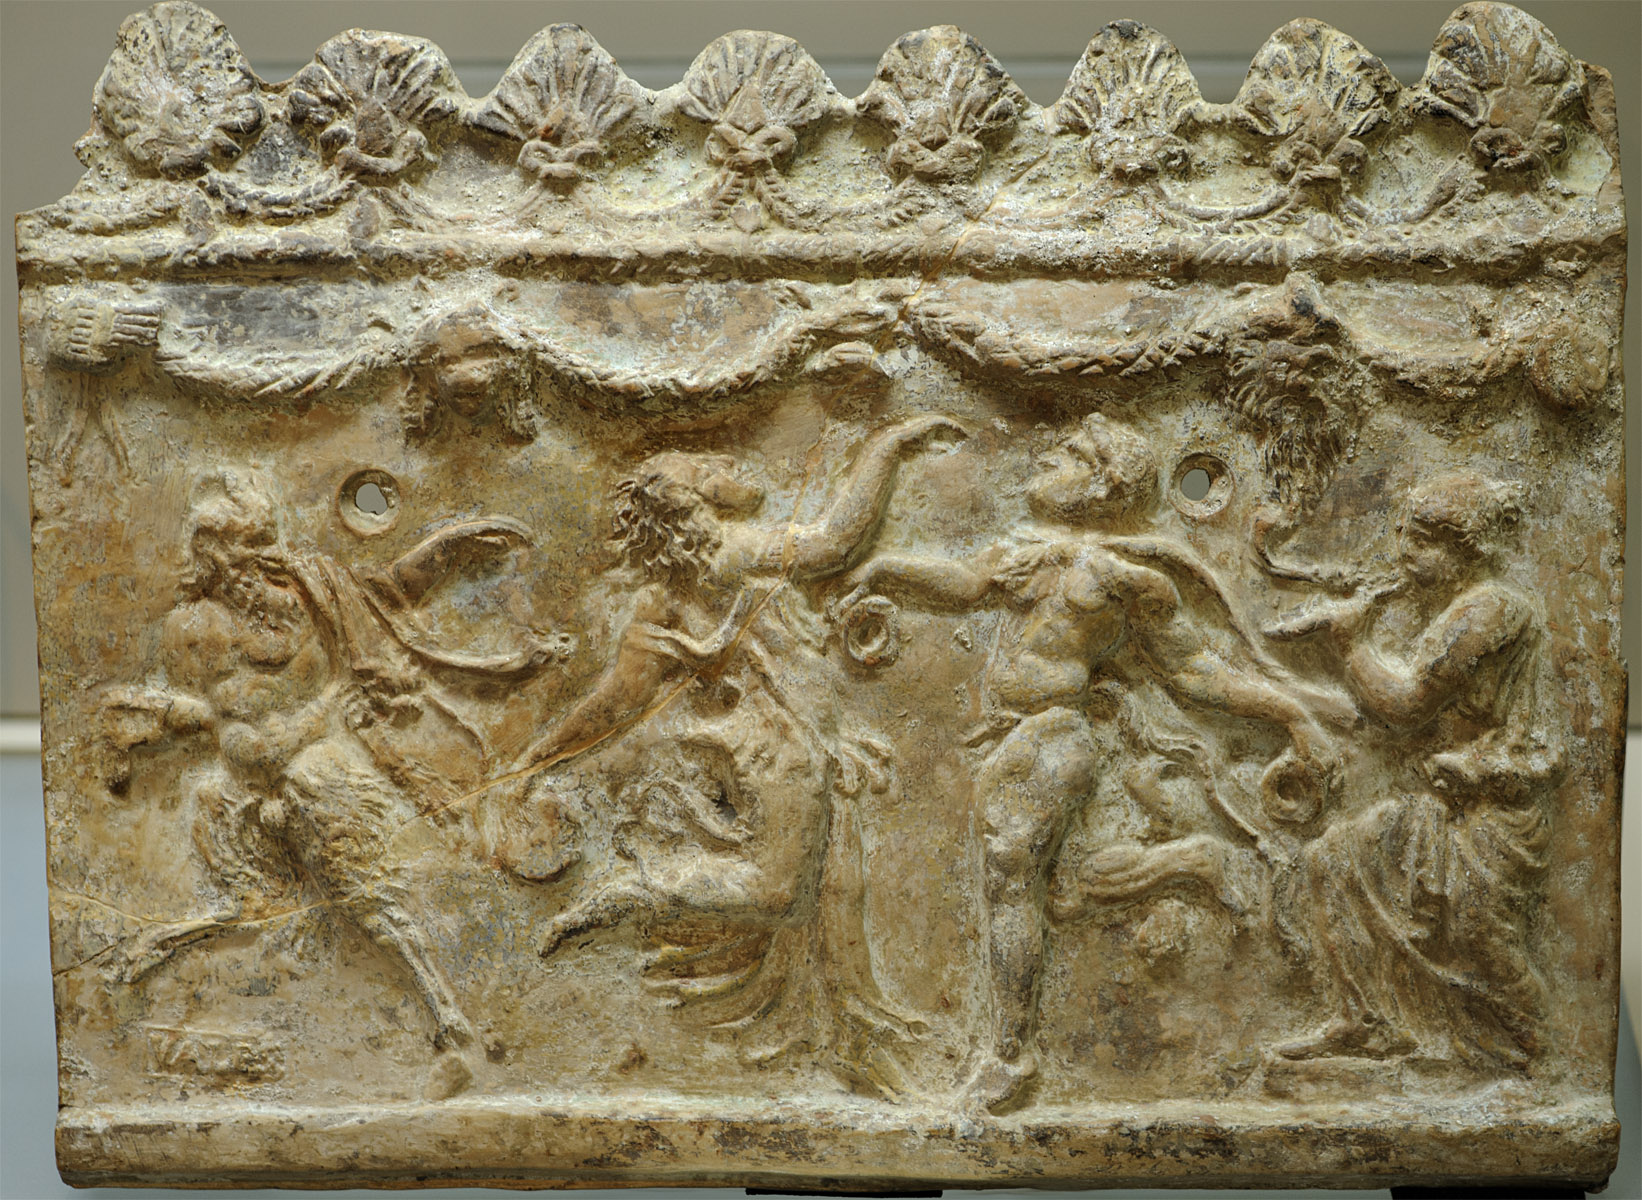 Decorative relief, the so-called Campana plaque with relief representation of dionysiac scene. Terracotta. 1st cent BCE — 1st cent. CE. Inv. No. A 0004.92. Milan, Civic Archaeological Museum